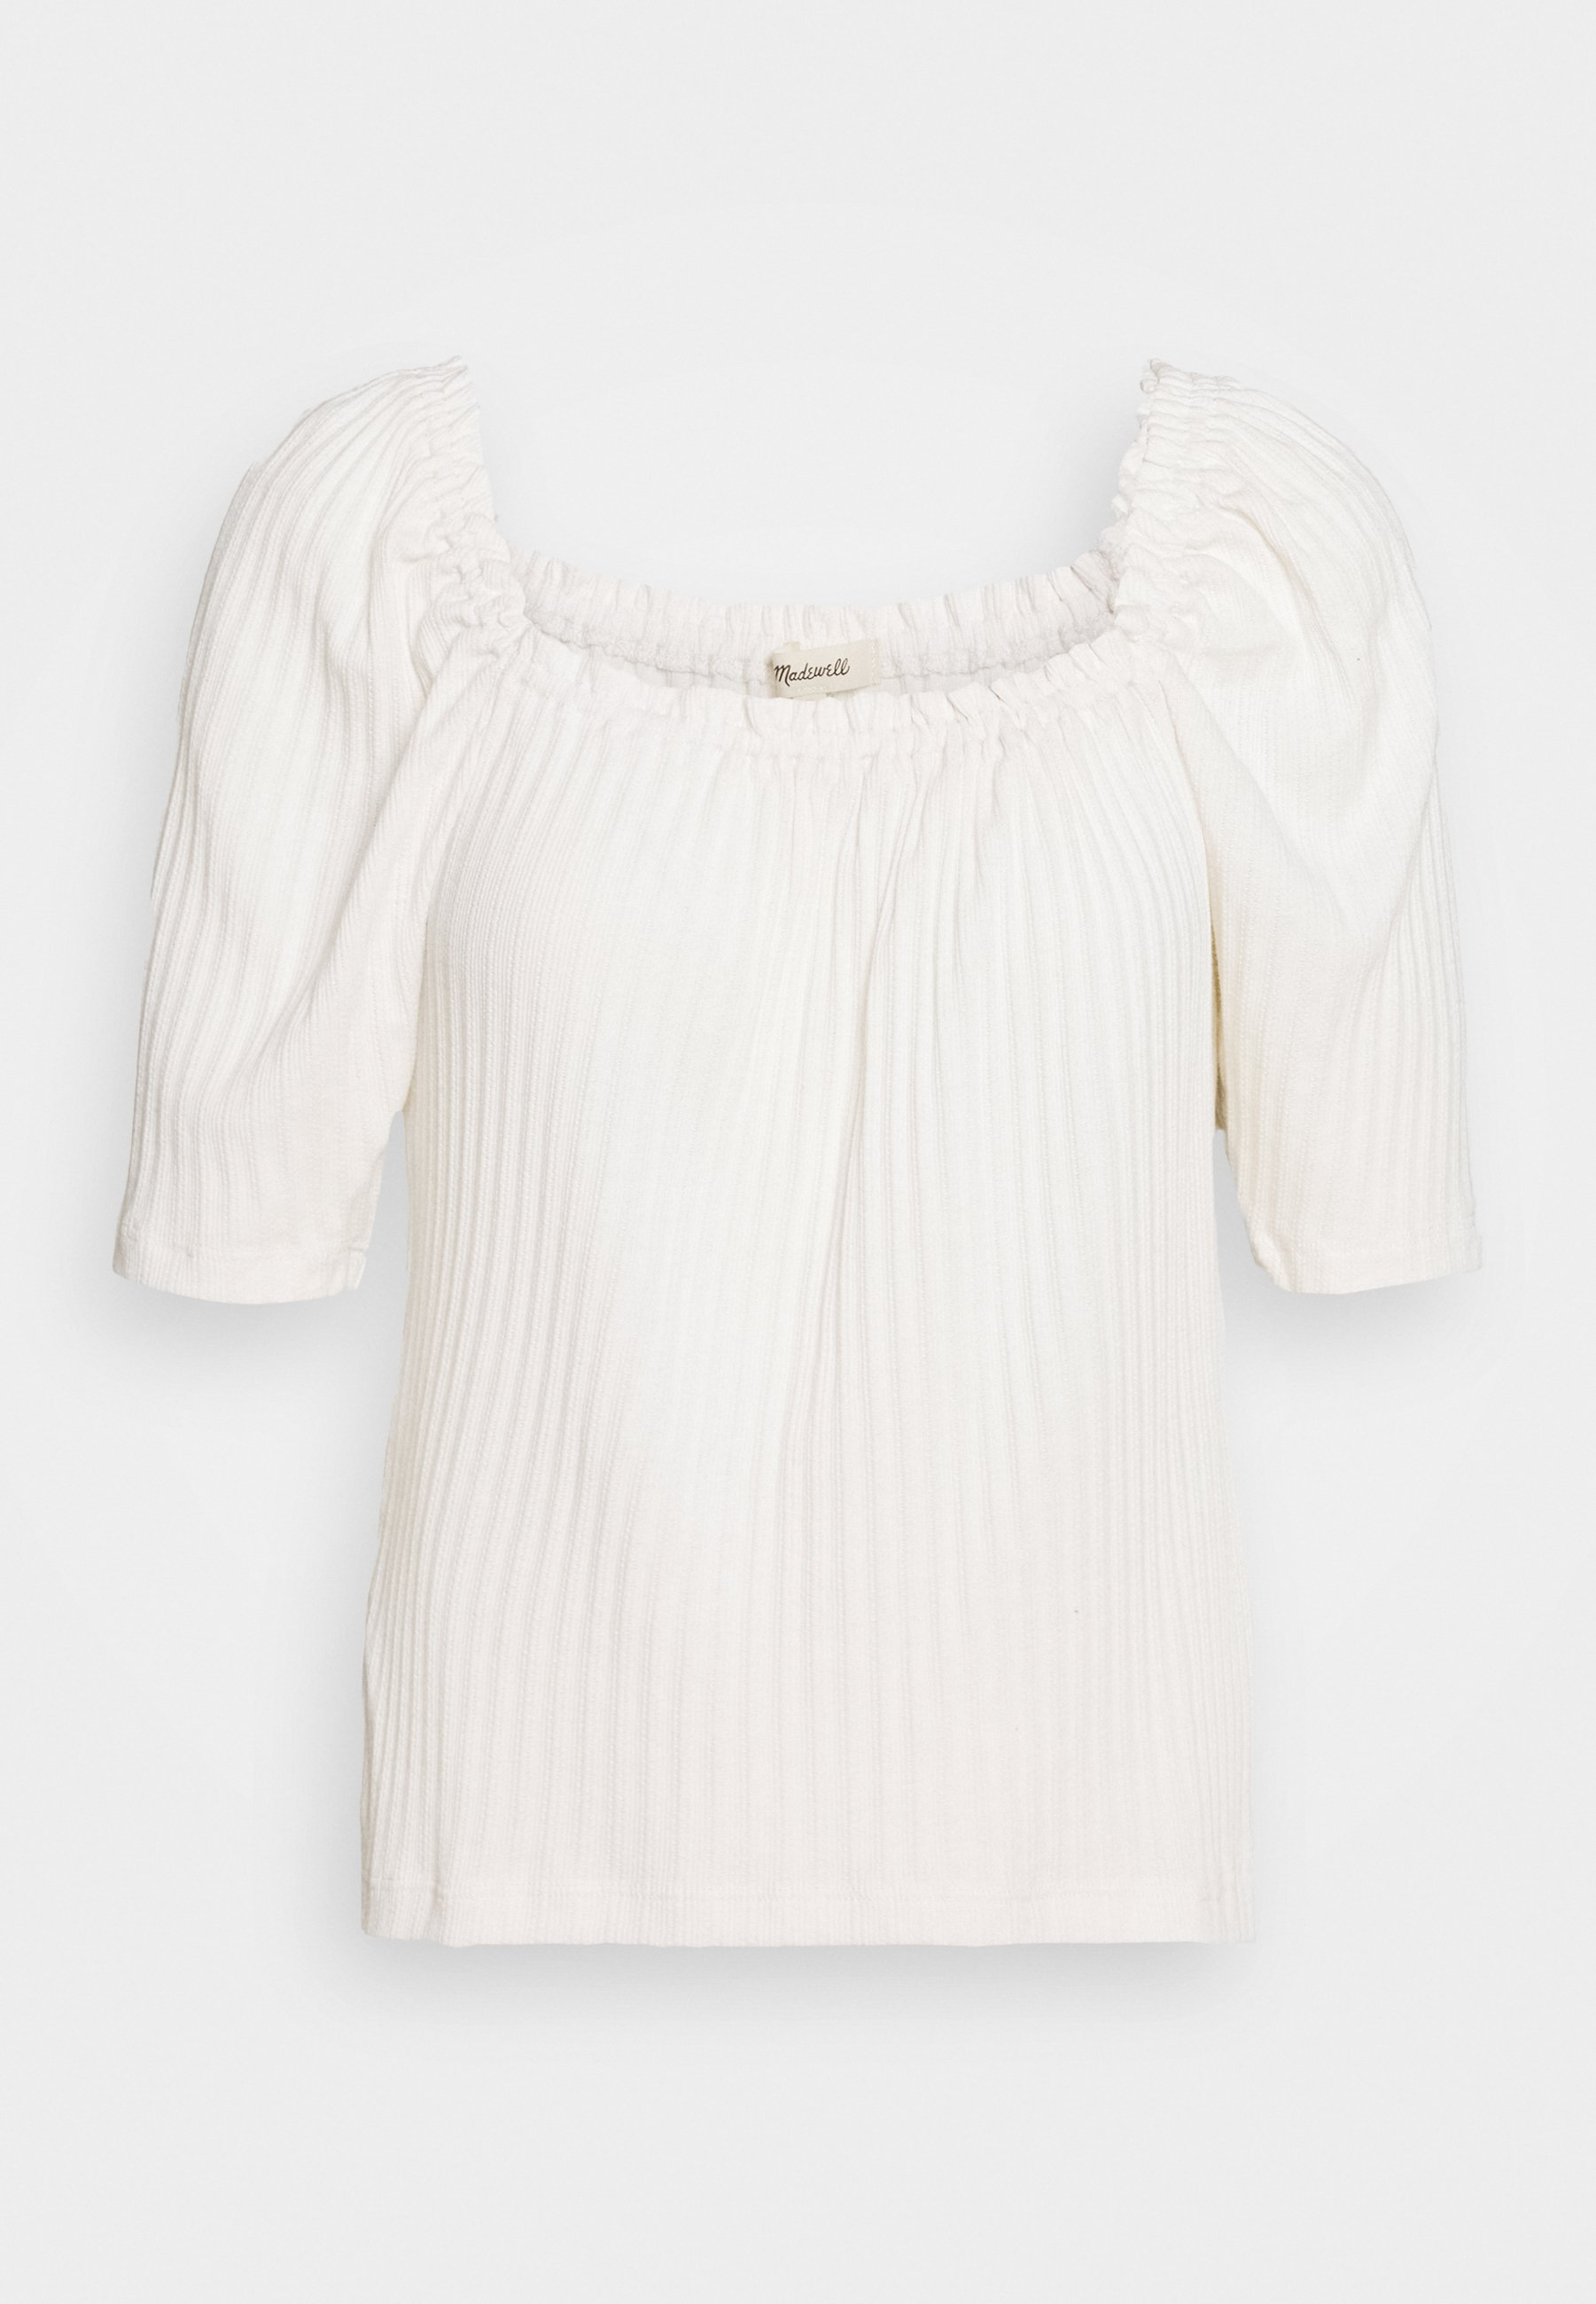 Madewell Café Cluny - T-shirts Med Print Pearl Ivory/beige